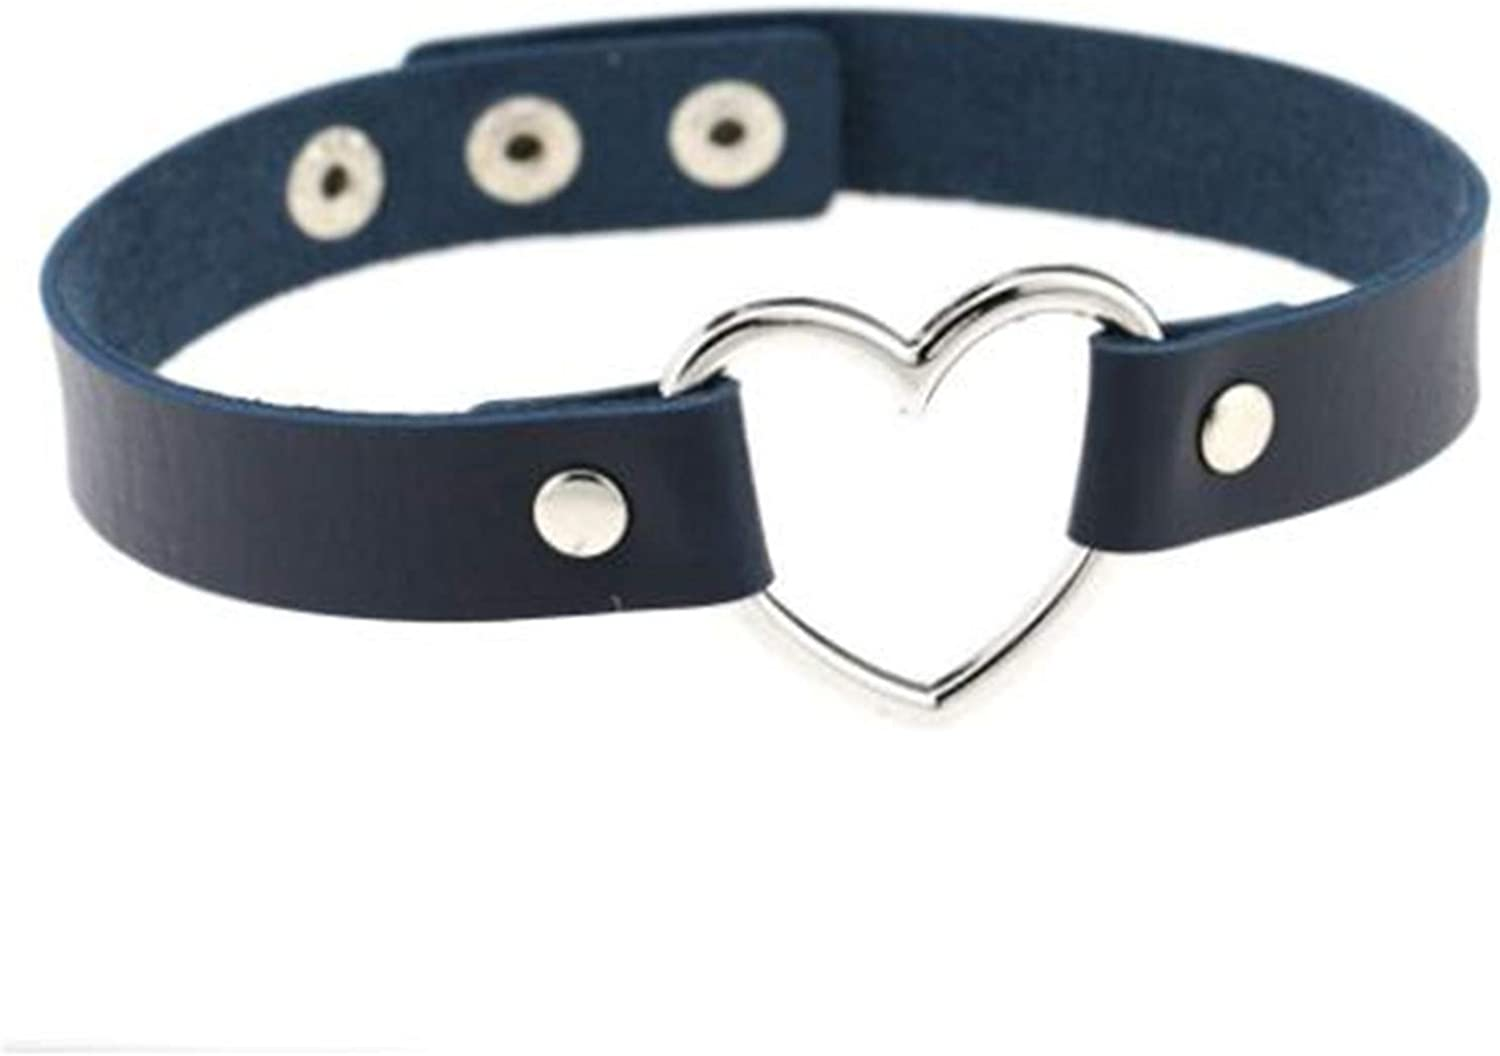 Bigsweety Punk Heart Charm PU Leather Collar Choker Necklace Adjustable